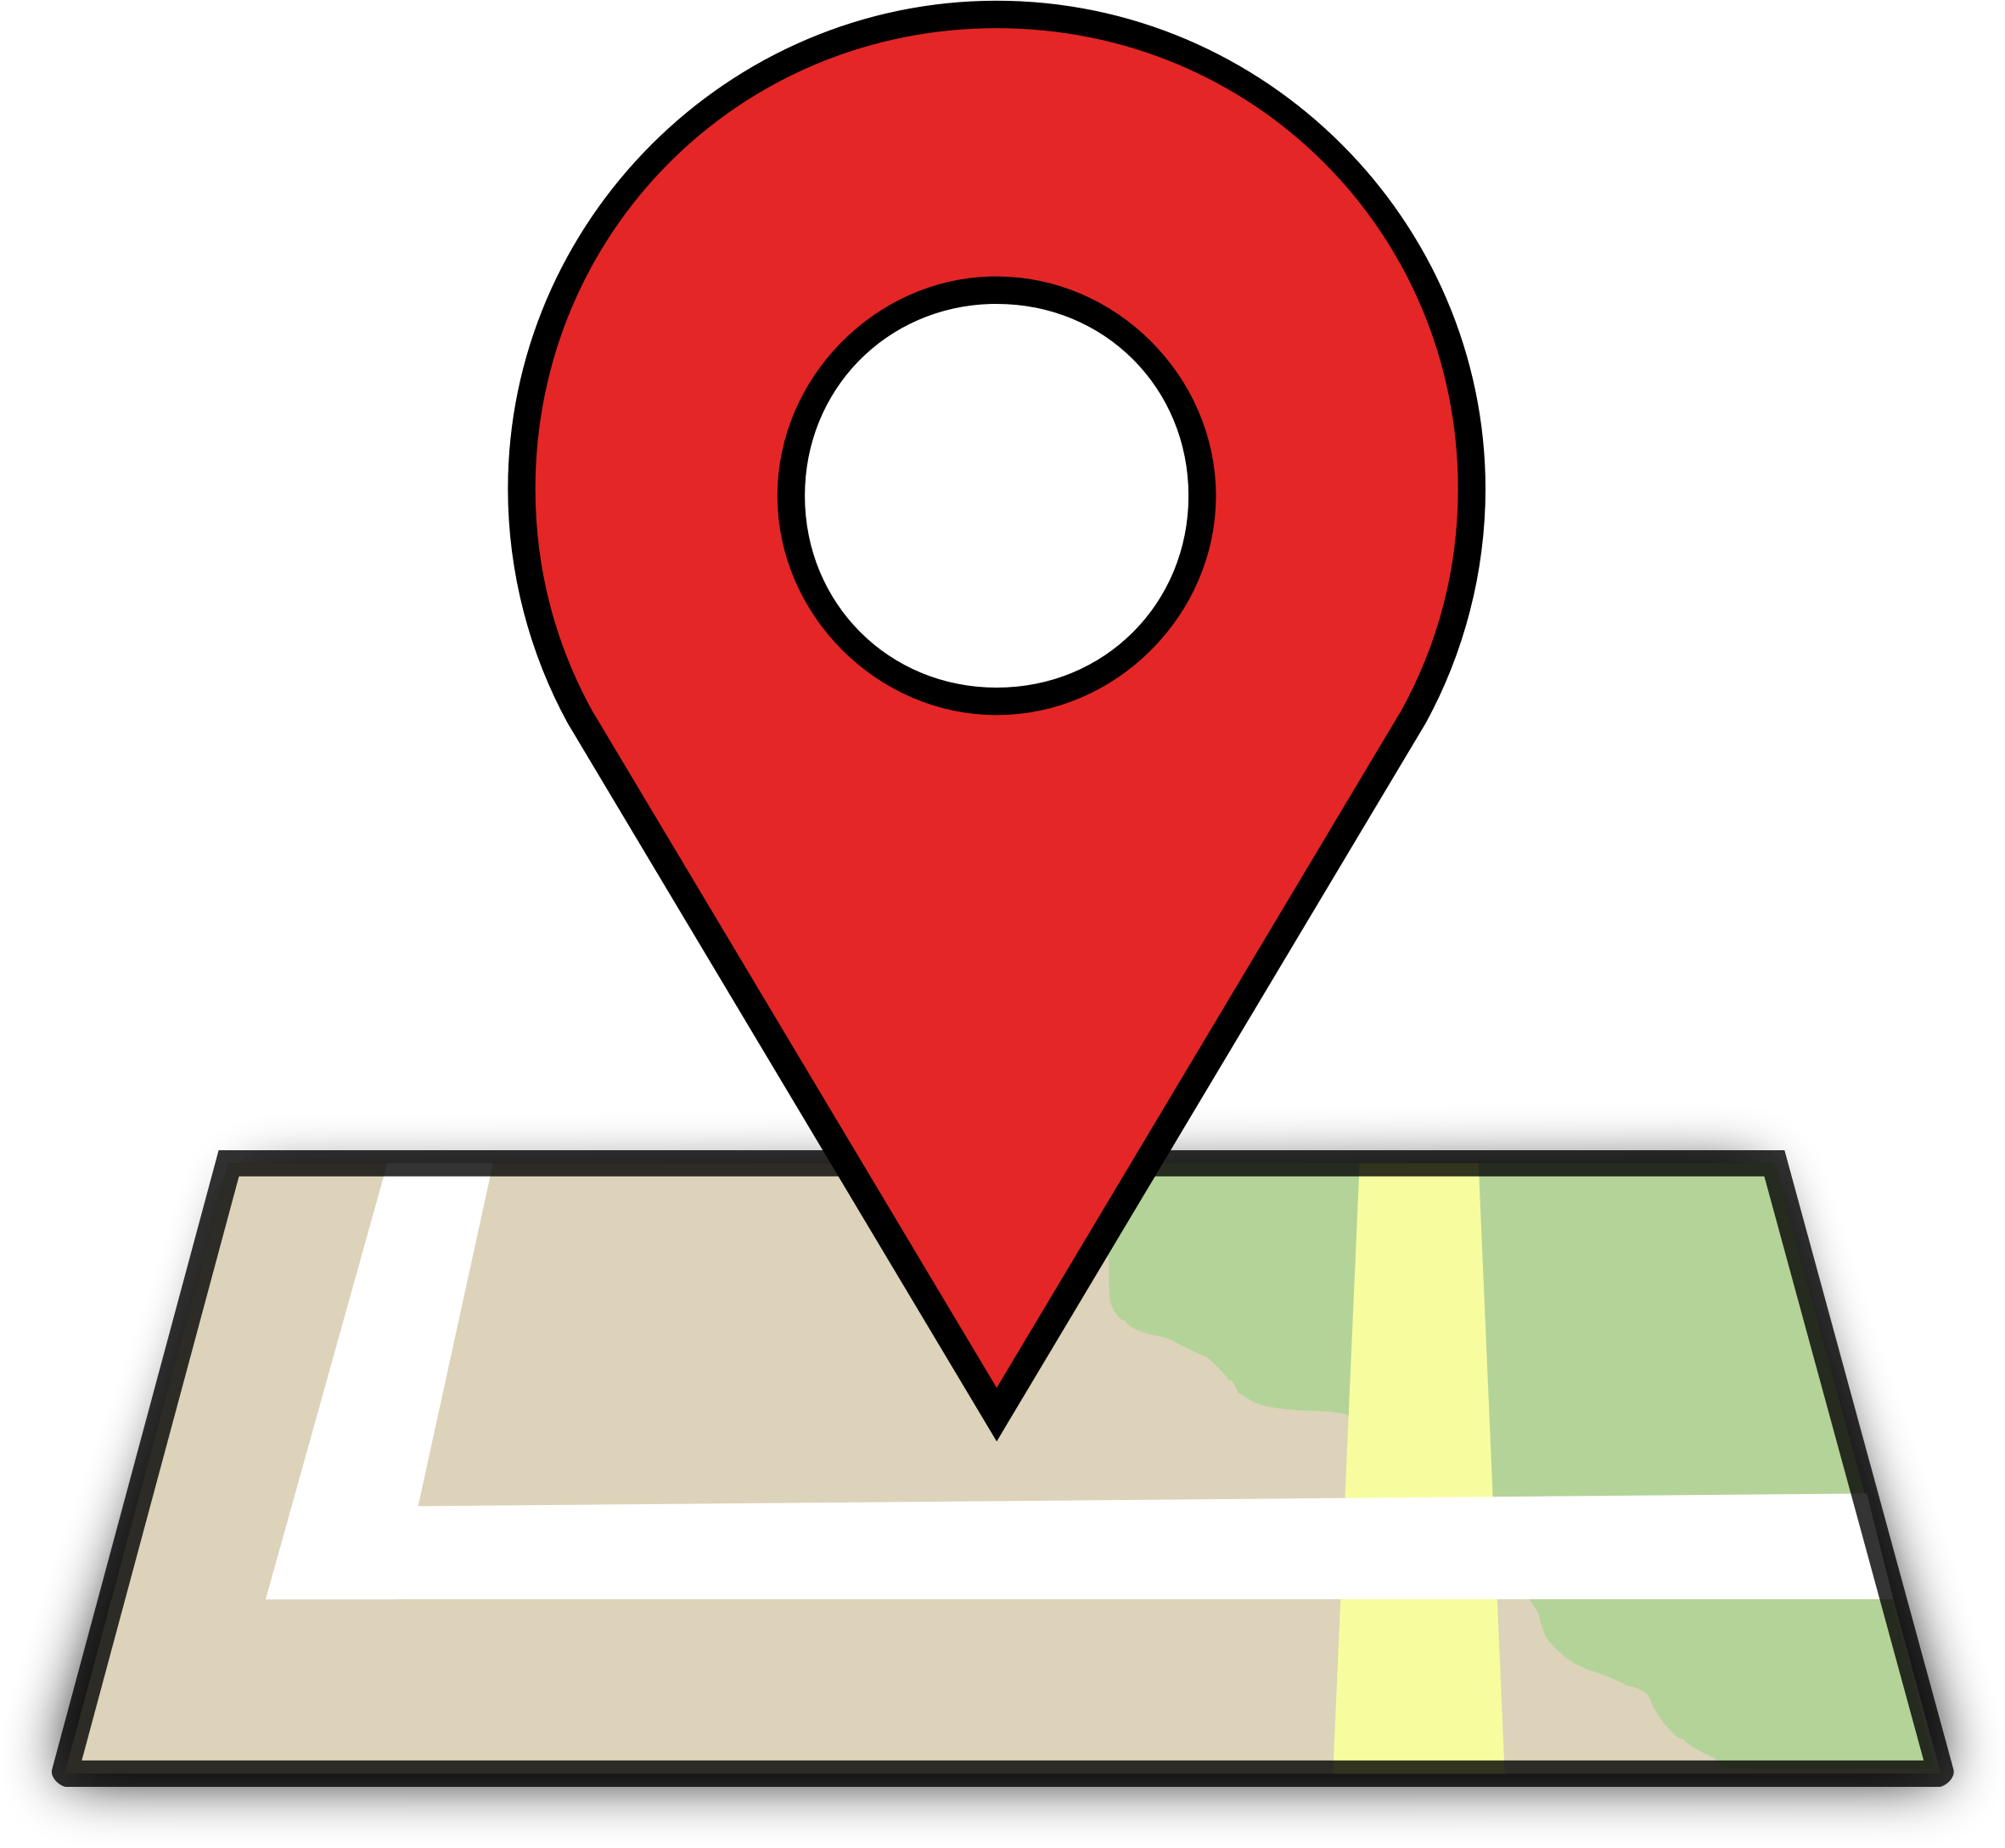 Location clipart mark. Free icon download transparent